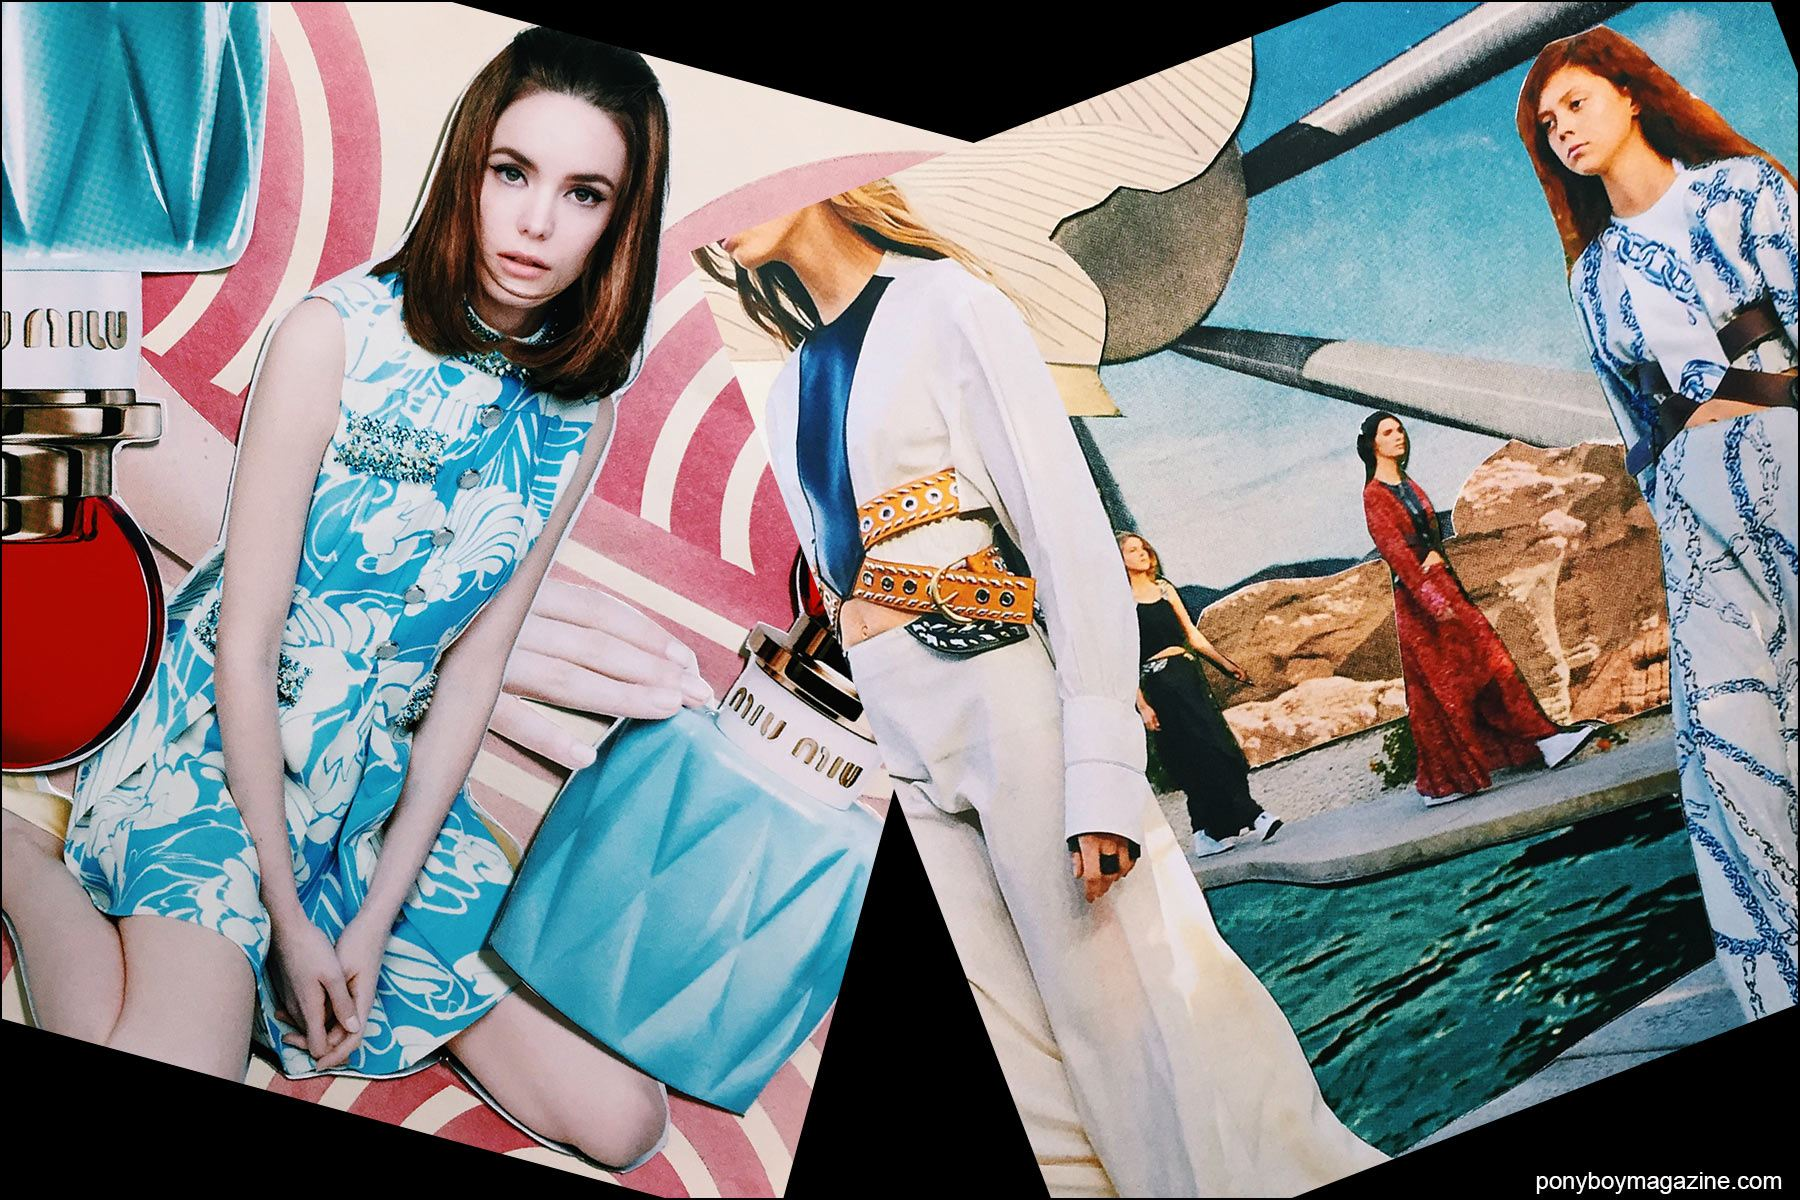 Collage artwork of Miu Miu and Louis Vuitton images by Patrick Keohane for RS Theory. Ponyboy magazine NY.